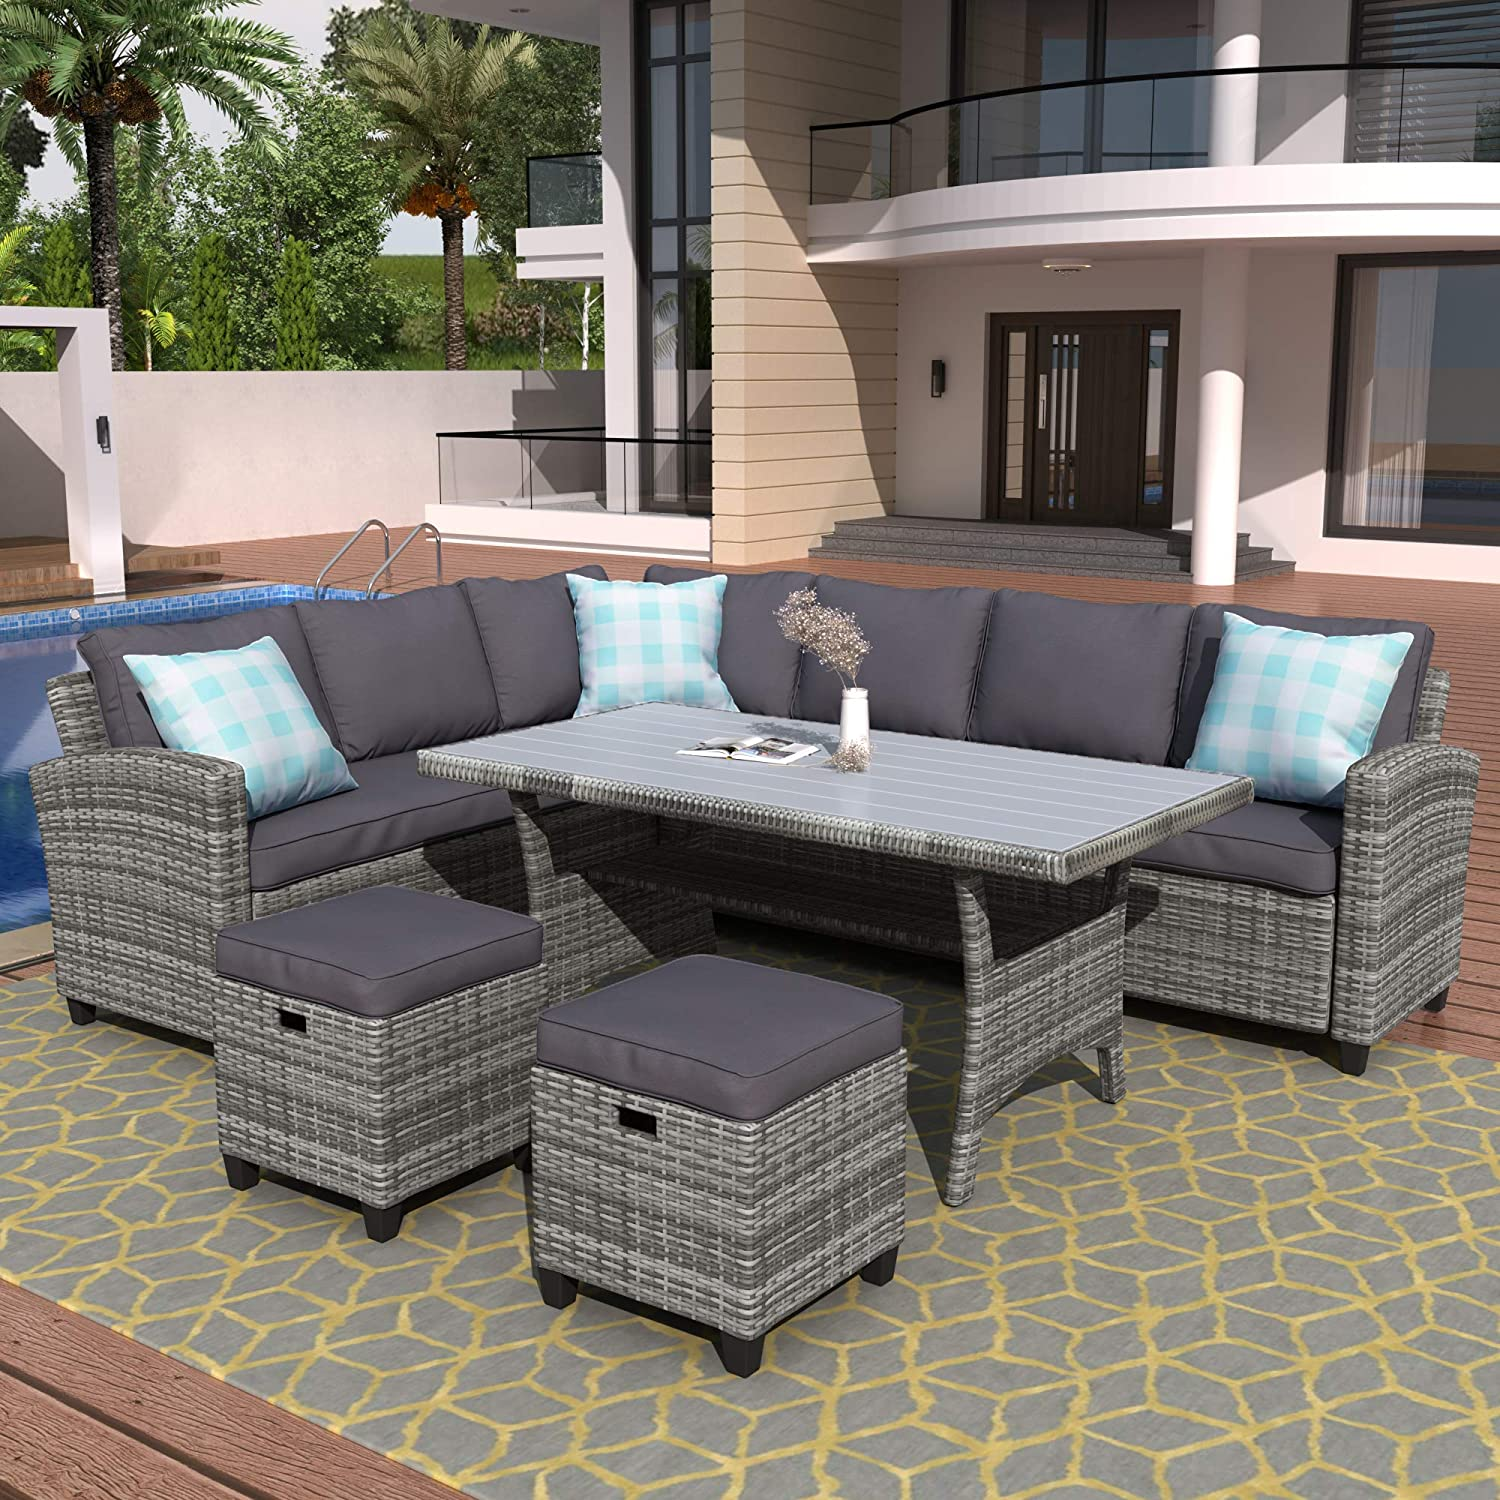 Amazon Com Merax Patio Dining Sets Outdoor Conversation Set All Weather Wicker Rattan Sectional Sofa Dining Table Chairs Set With 2 Ottoman Grey Cushion Garden Outdoor